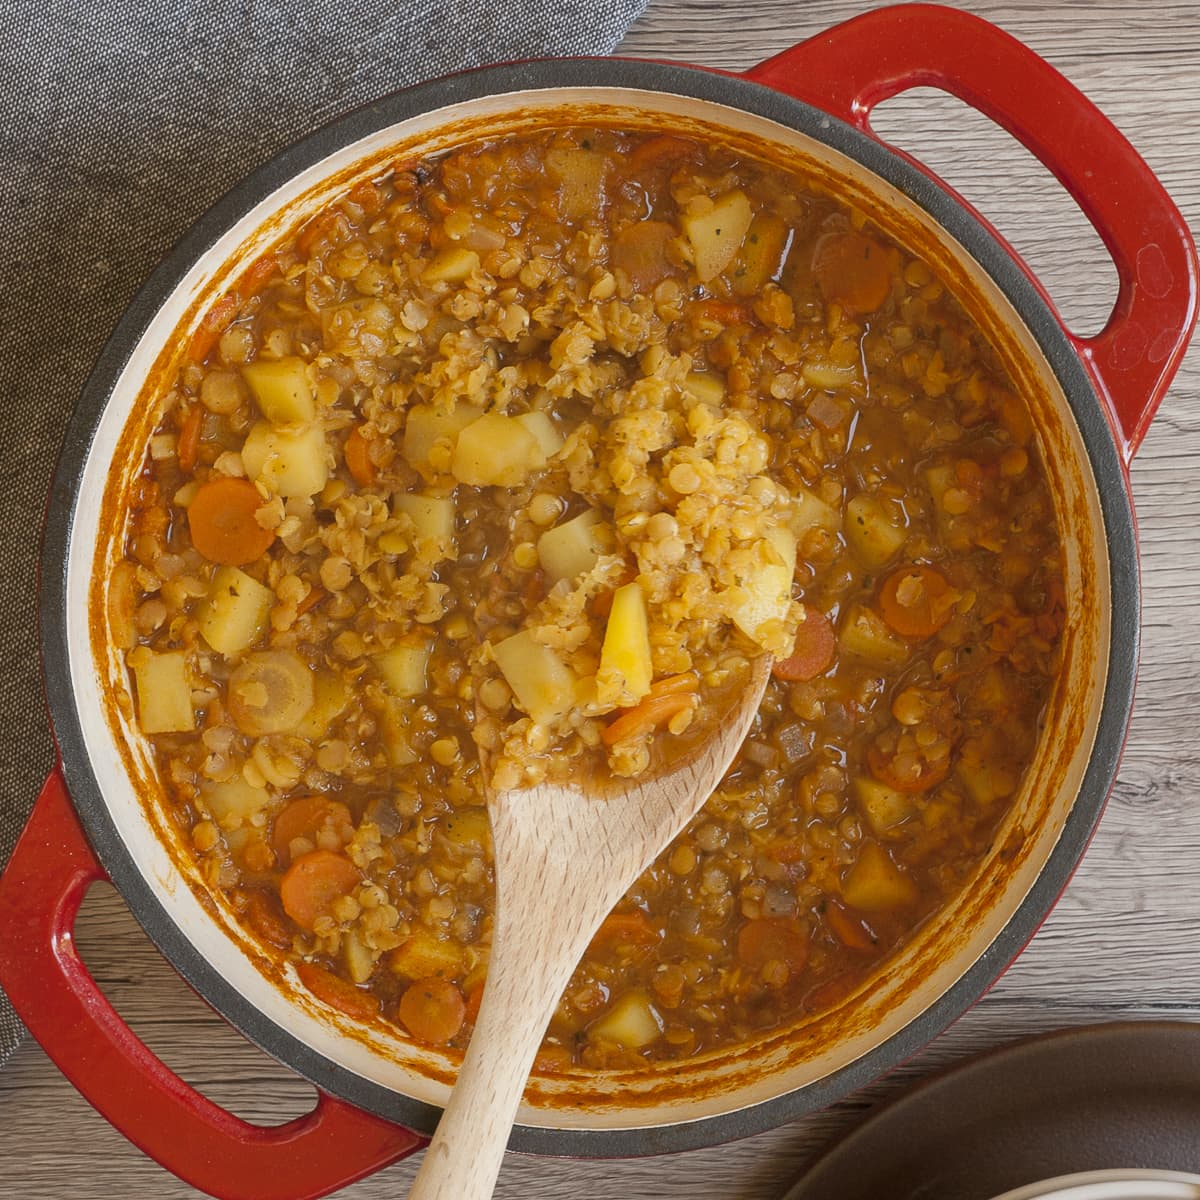 Red Dutch Oven with red lentil soup and a wooden spoon taking a serving